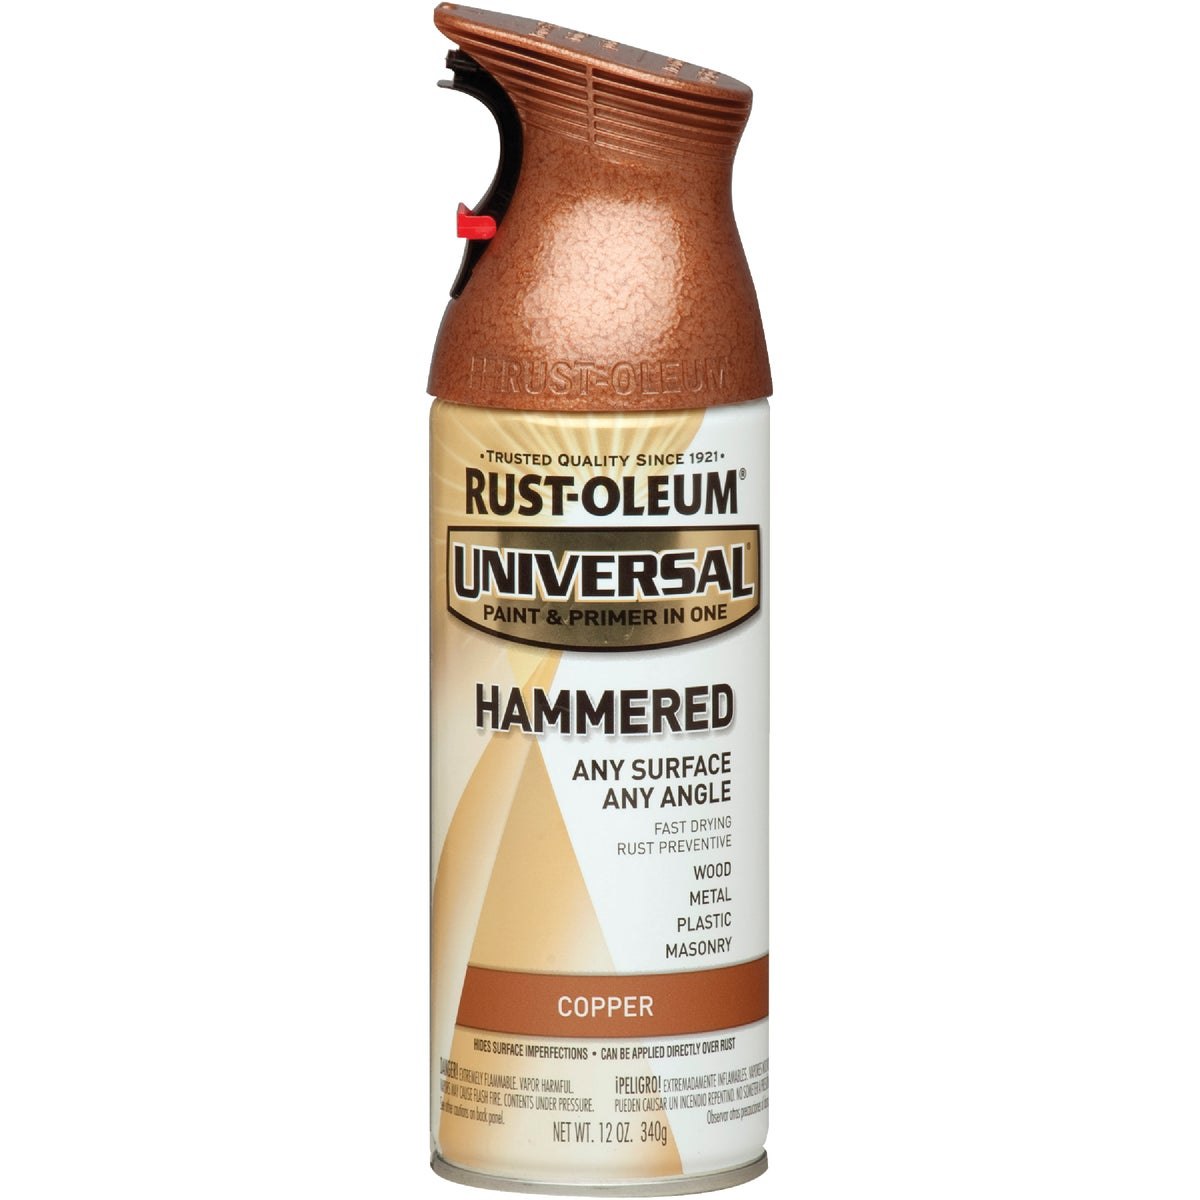 HAMM CPR UNIV SPRY PAINT - 247567 by Rustoleum